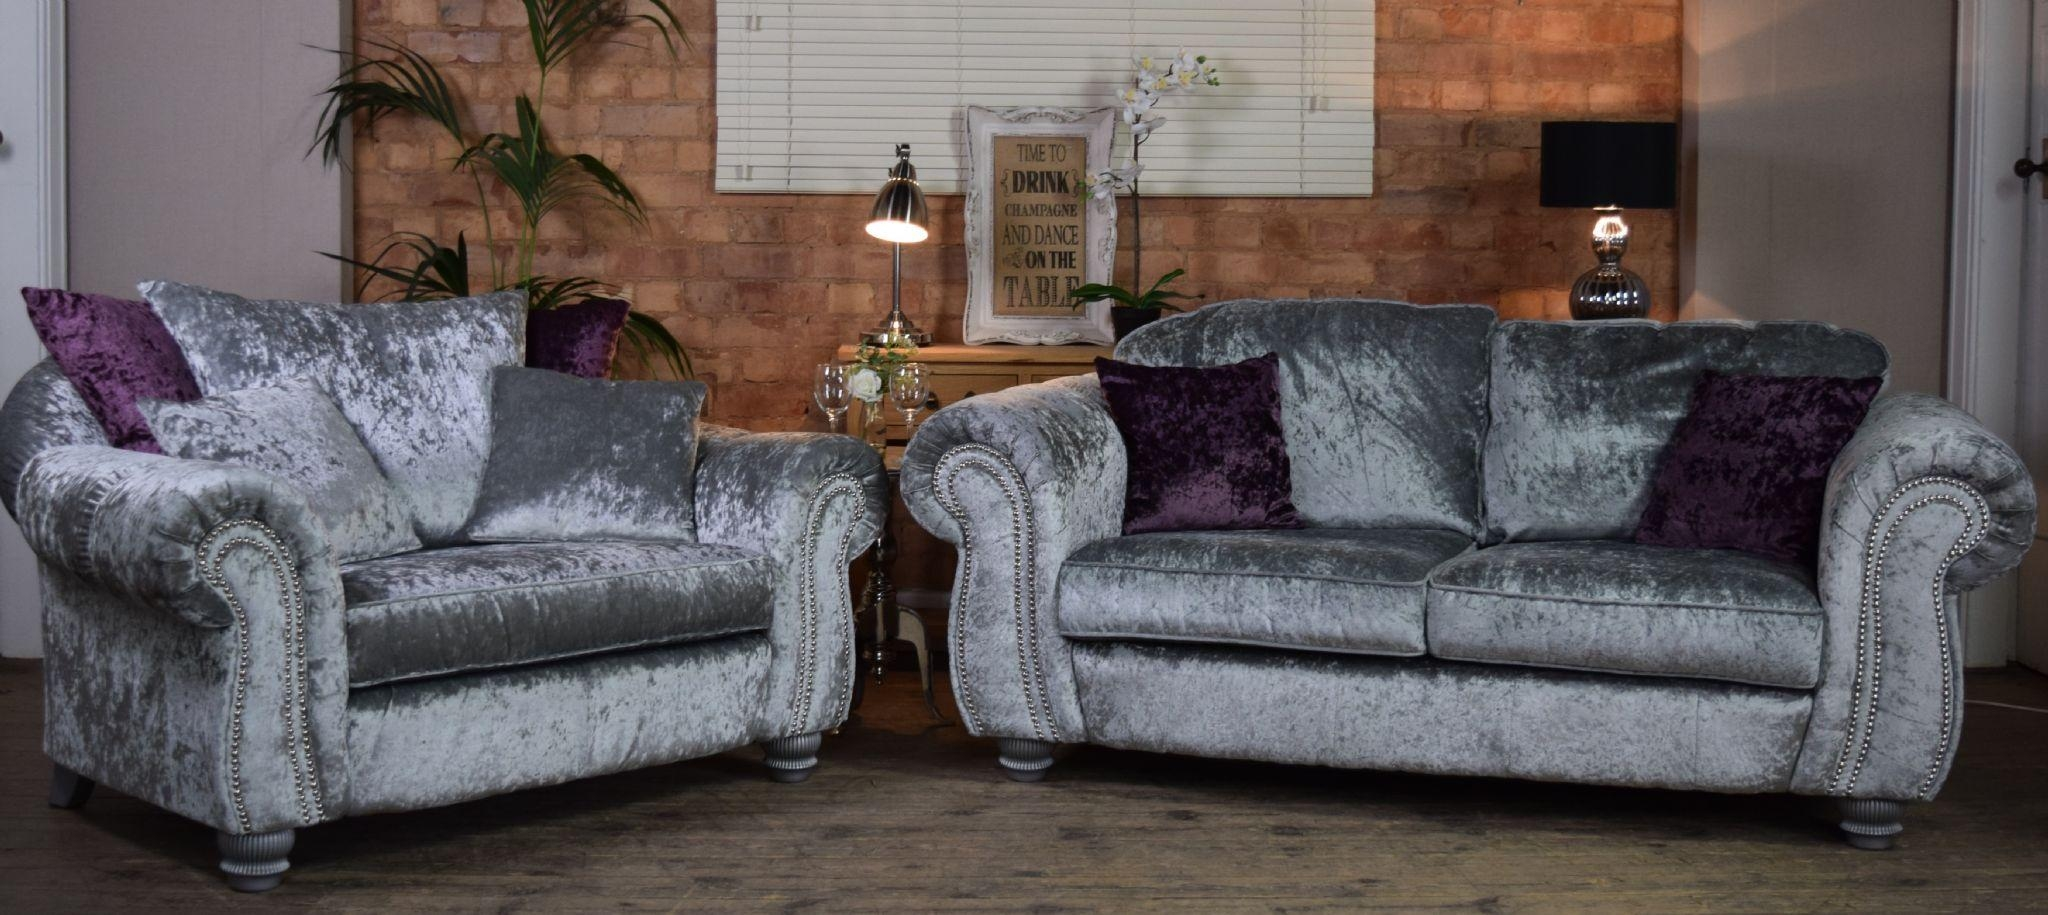 Set Luna Quantas 2 Seater Sofa Cuddle Chair Suite Set – Silver Pertaining To 3 Seater Sofa And Cuddle Chairs (View 11 of 20)